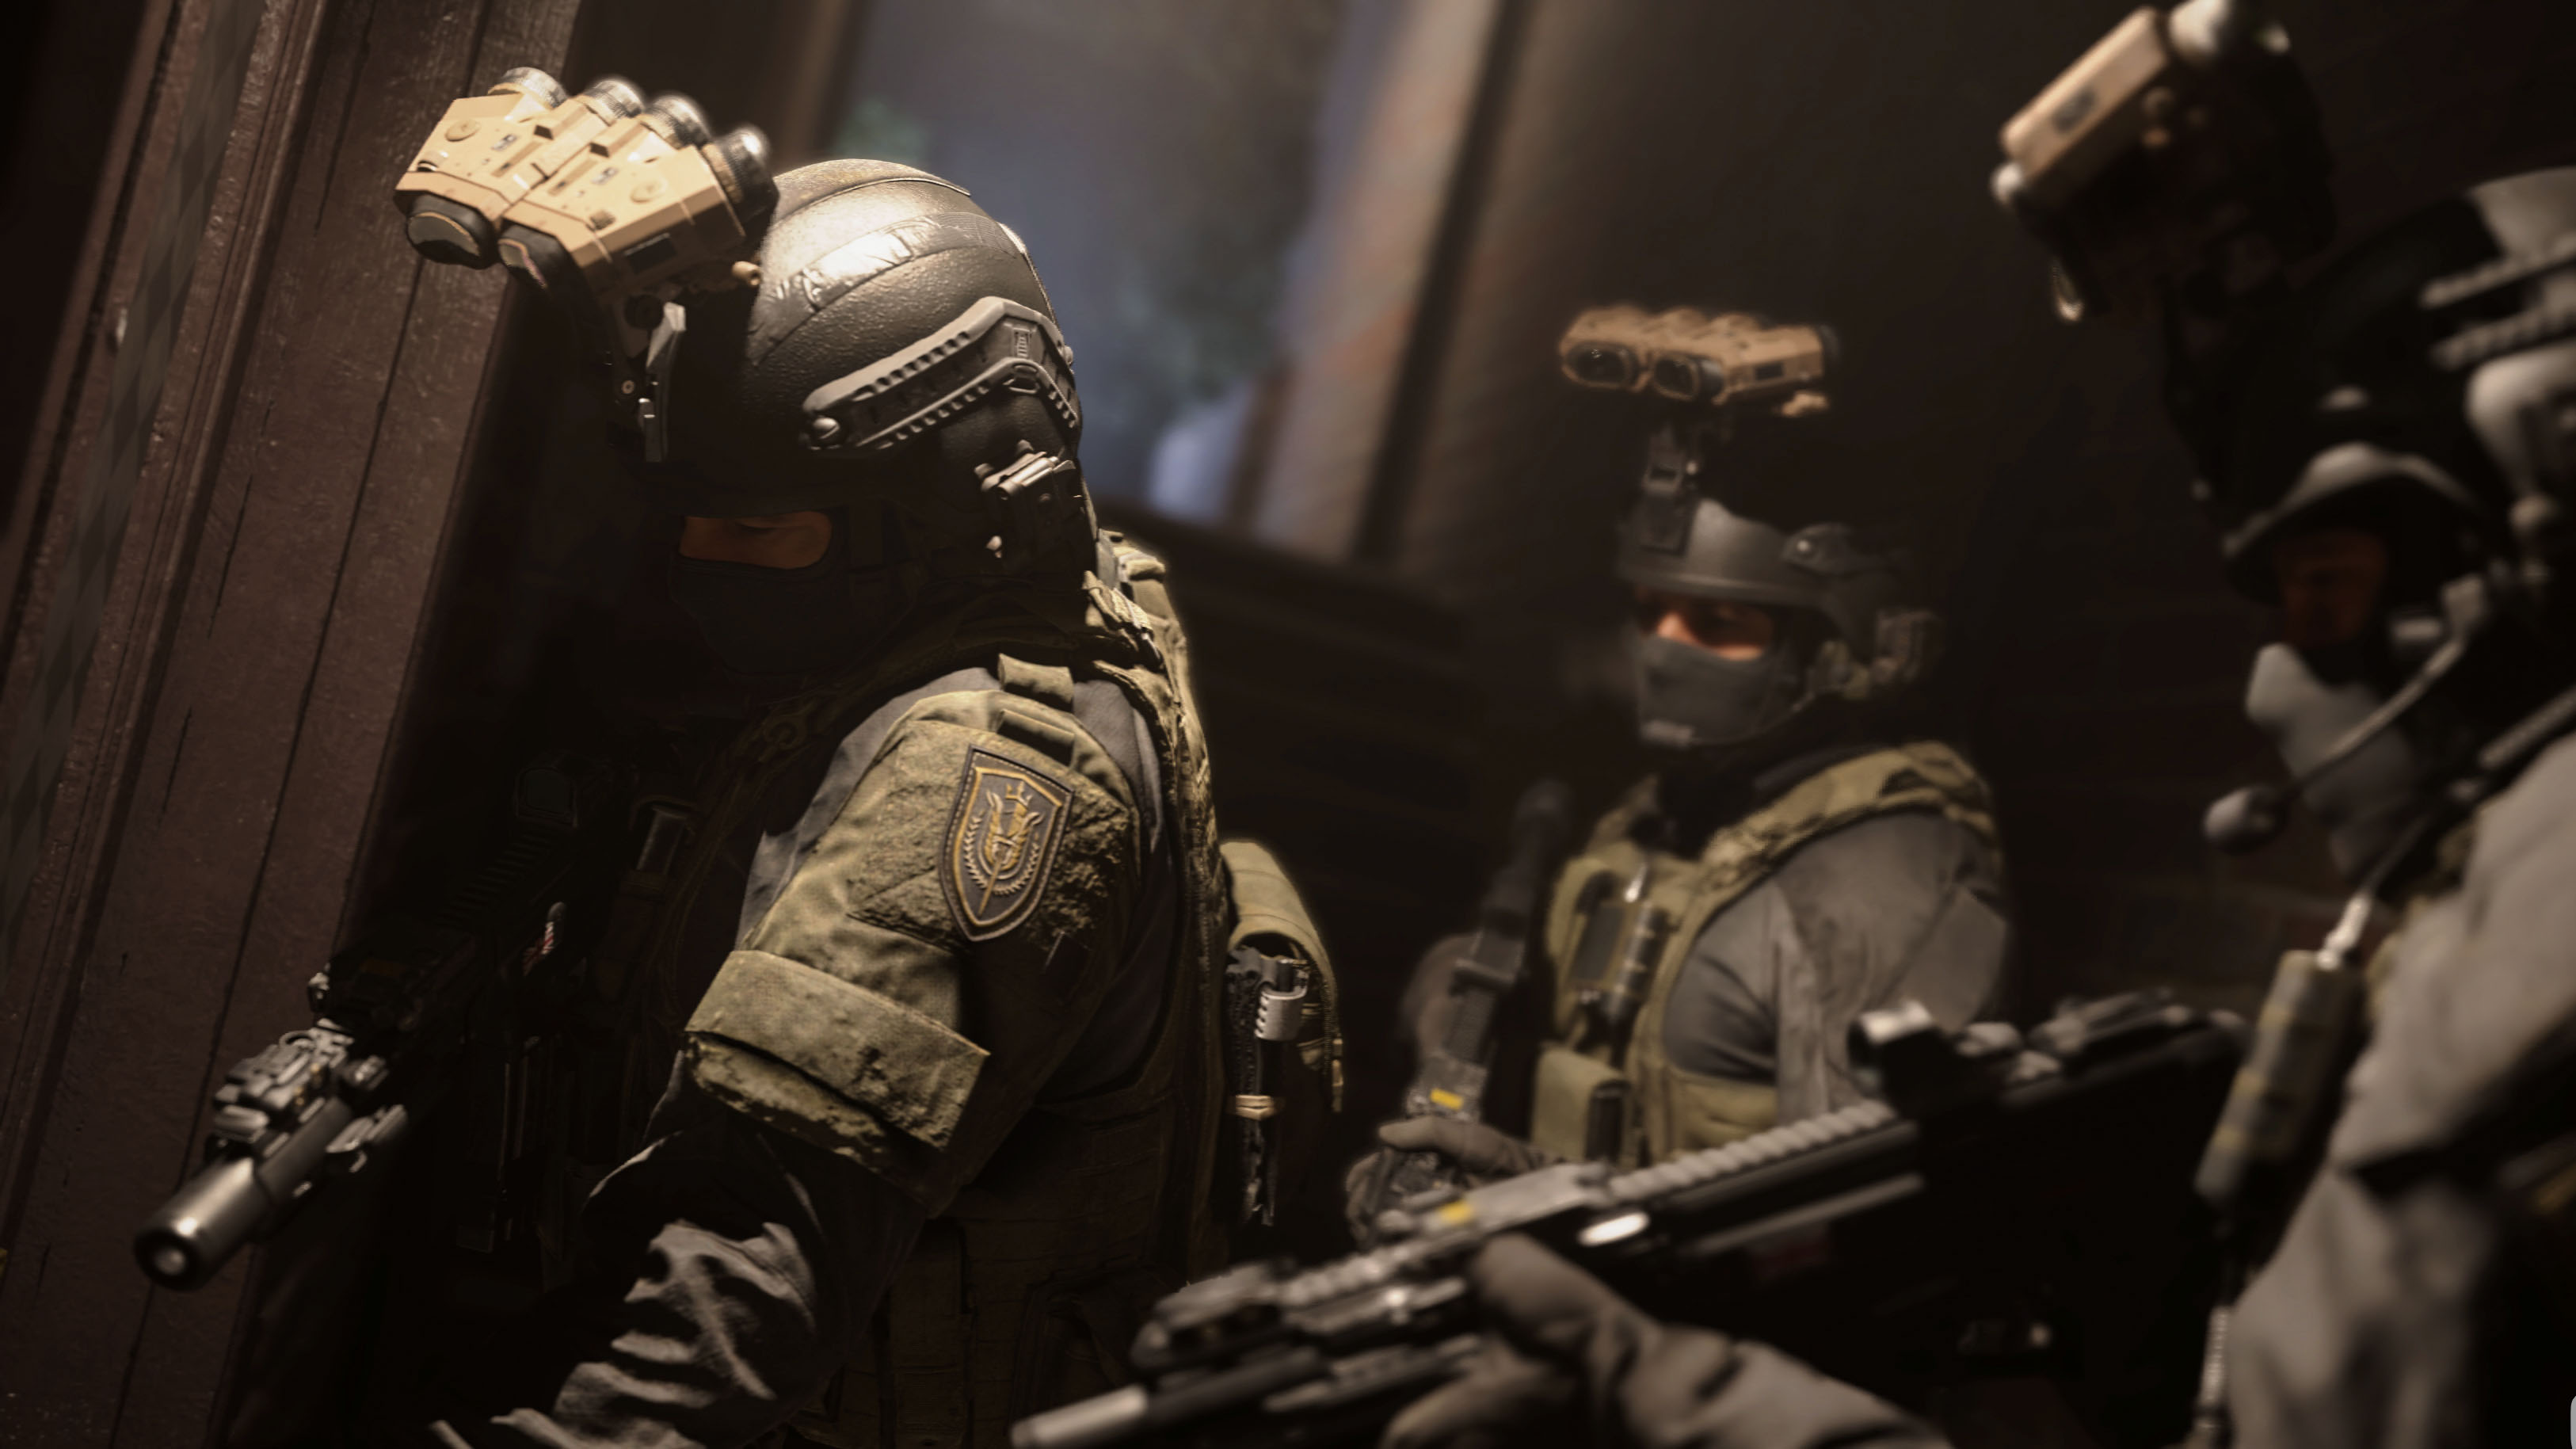 Call of Duty: Modern Warfare is currently in development for PS4, Xbox One, and PC.